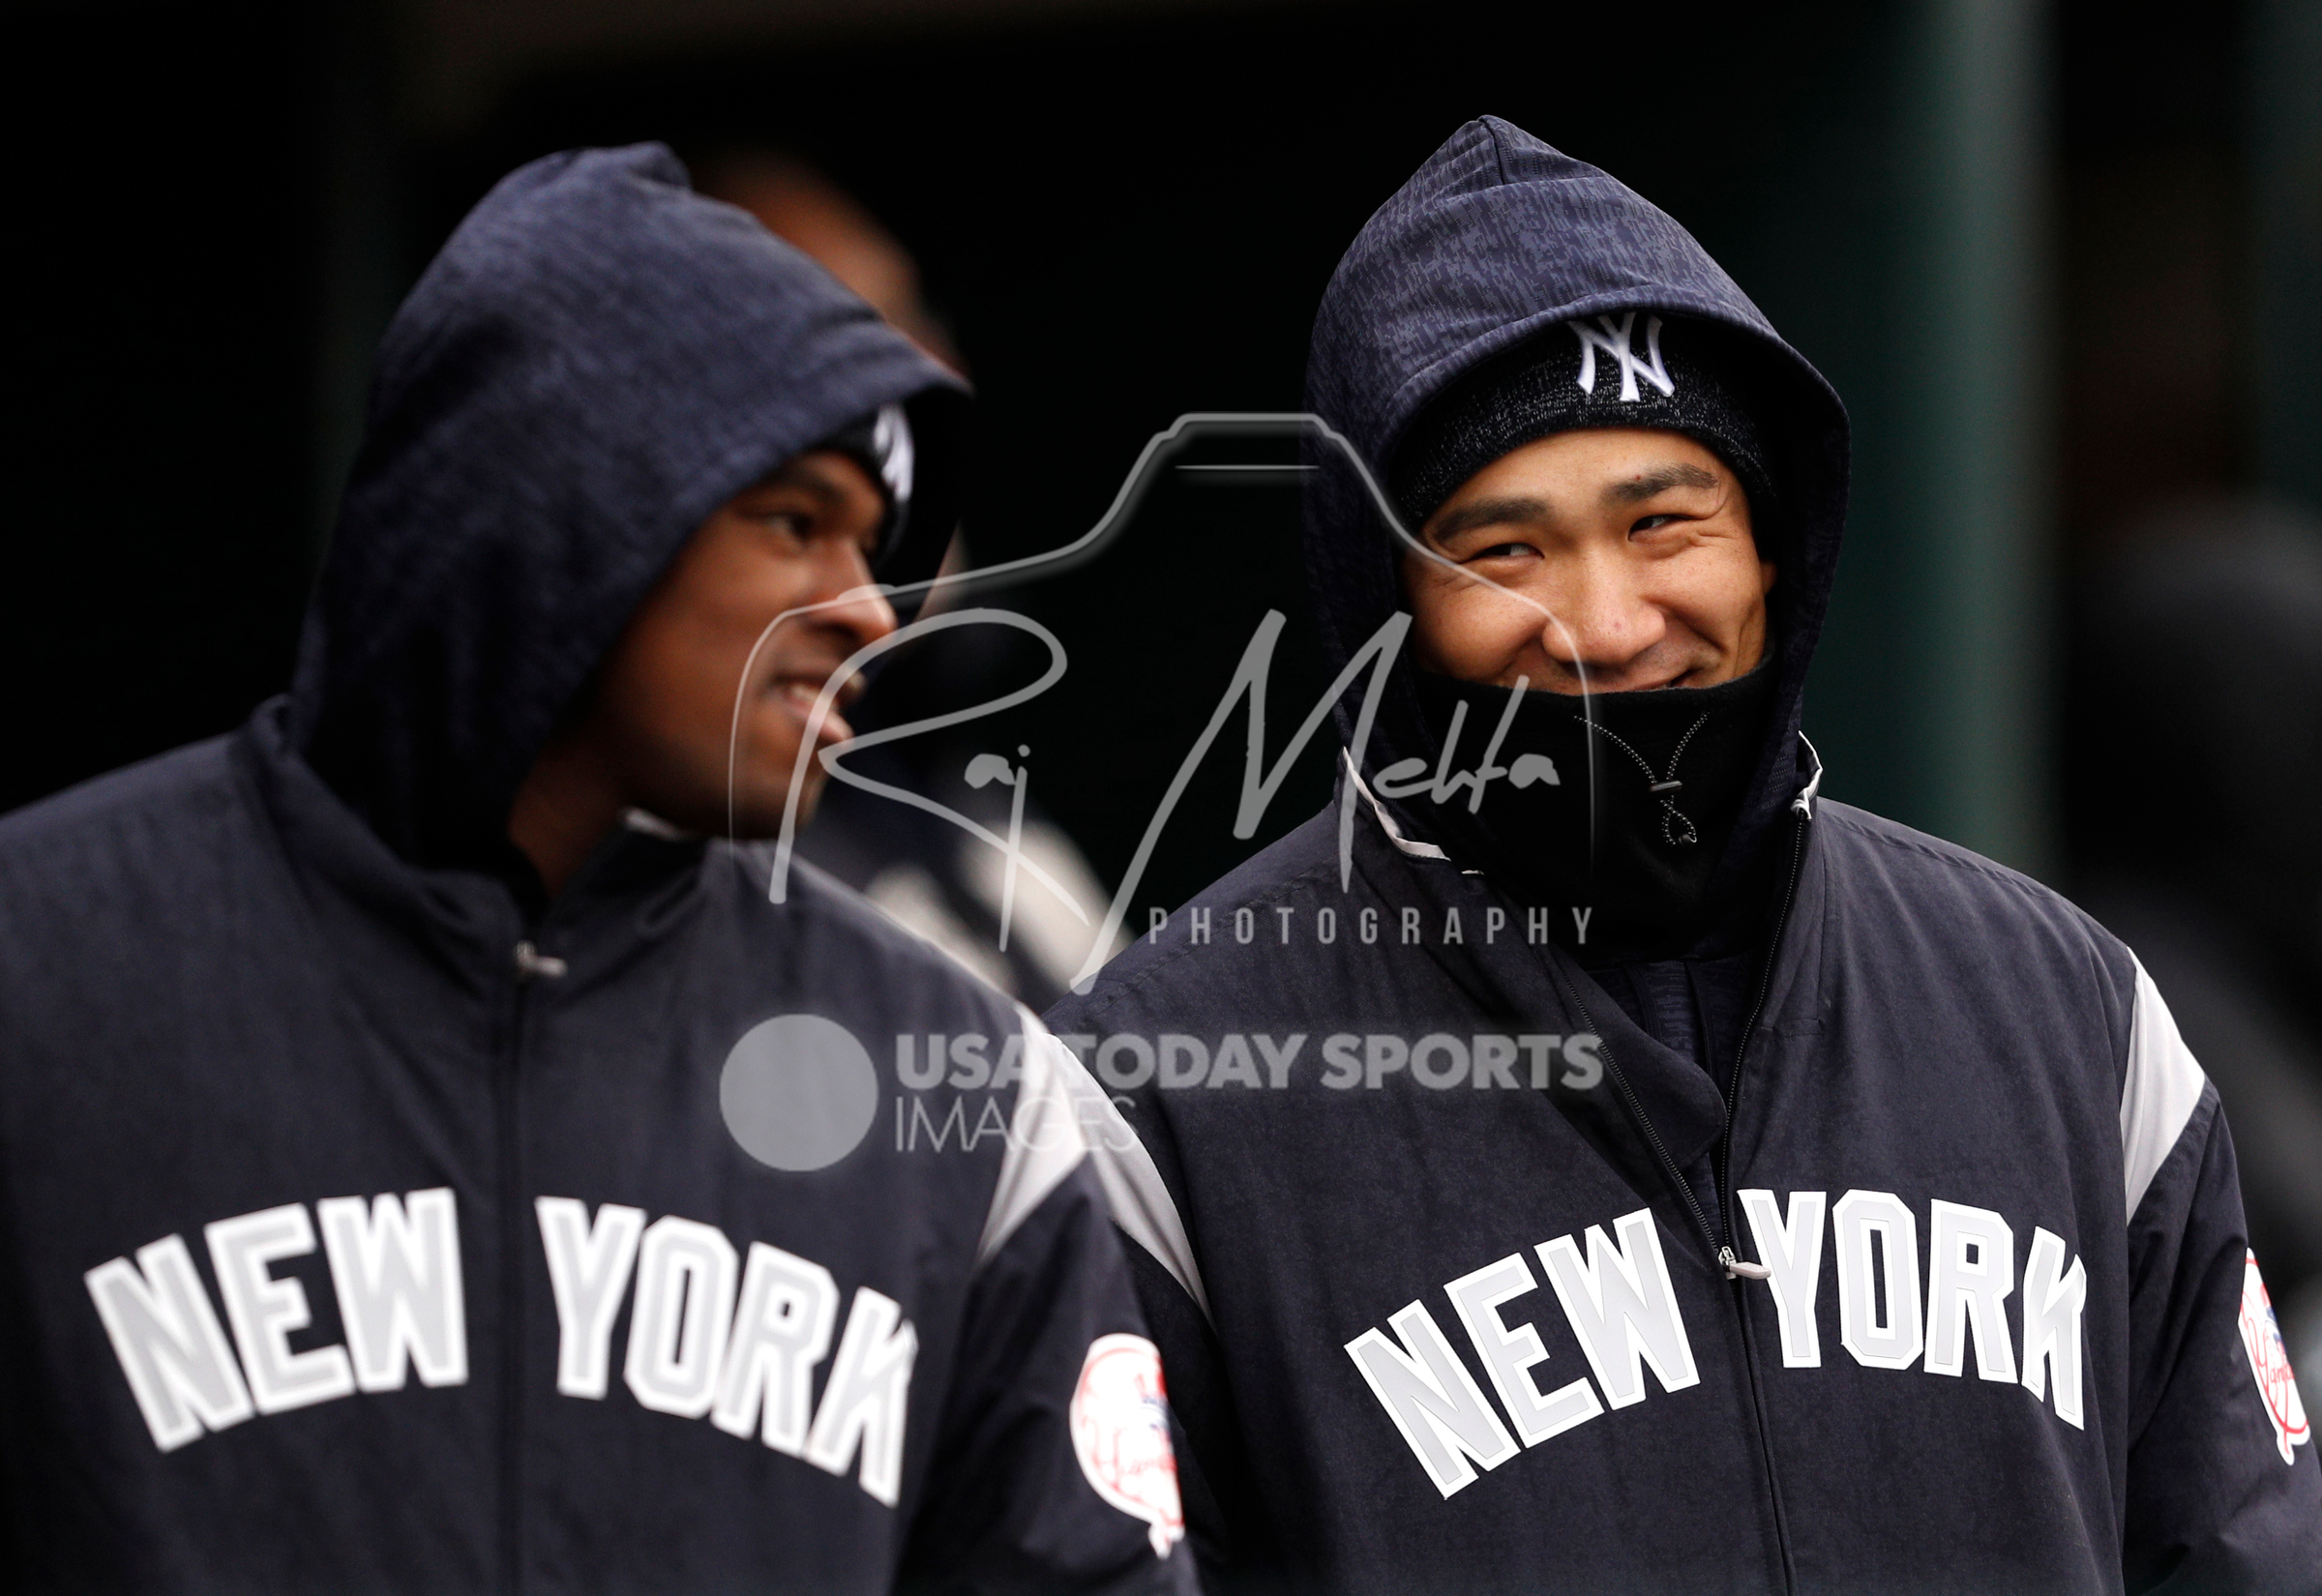 Apr 13, 2018; Detroit, MI, USA; New York Yankees starting pitcher Masahiro Tanaka (right) smiles in the dugout before the game against the Detroit Tigers at Comerica Park. Mandatory Credit: Raj Mehta-USA TODAY Sports